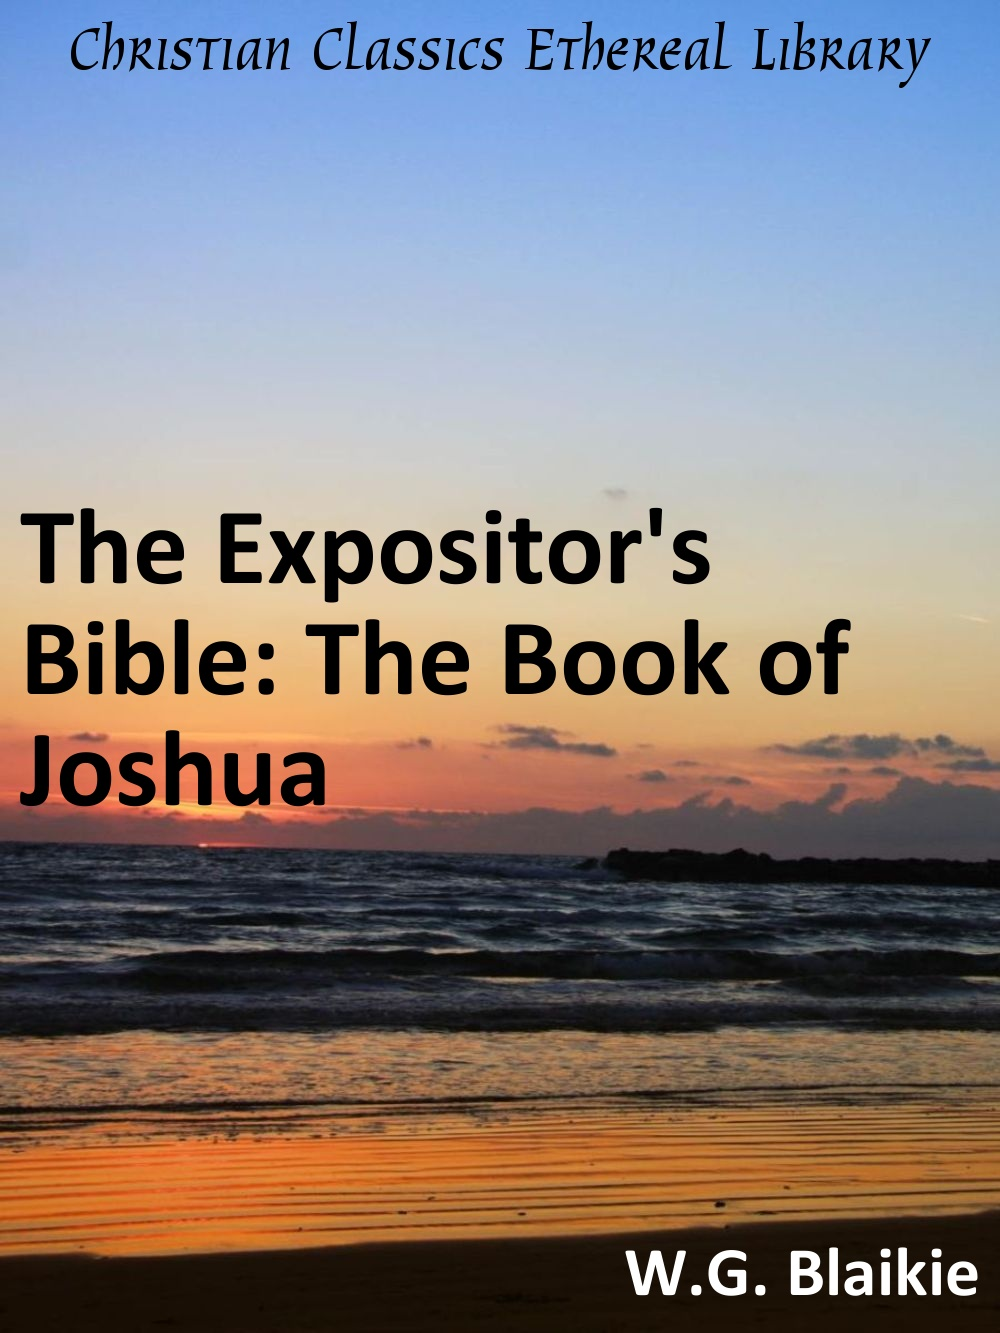 a summary of the book of joshua in the bible Find helpful charts and overviews of every book of the bible to enhance your personal study of the greatest book ever written.